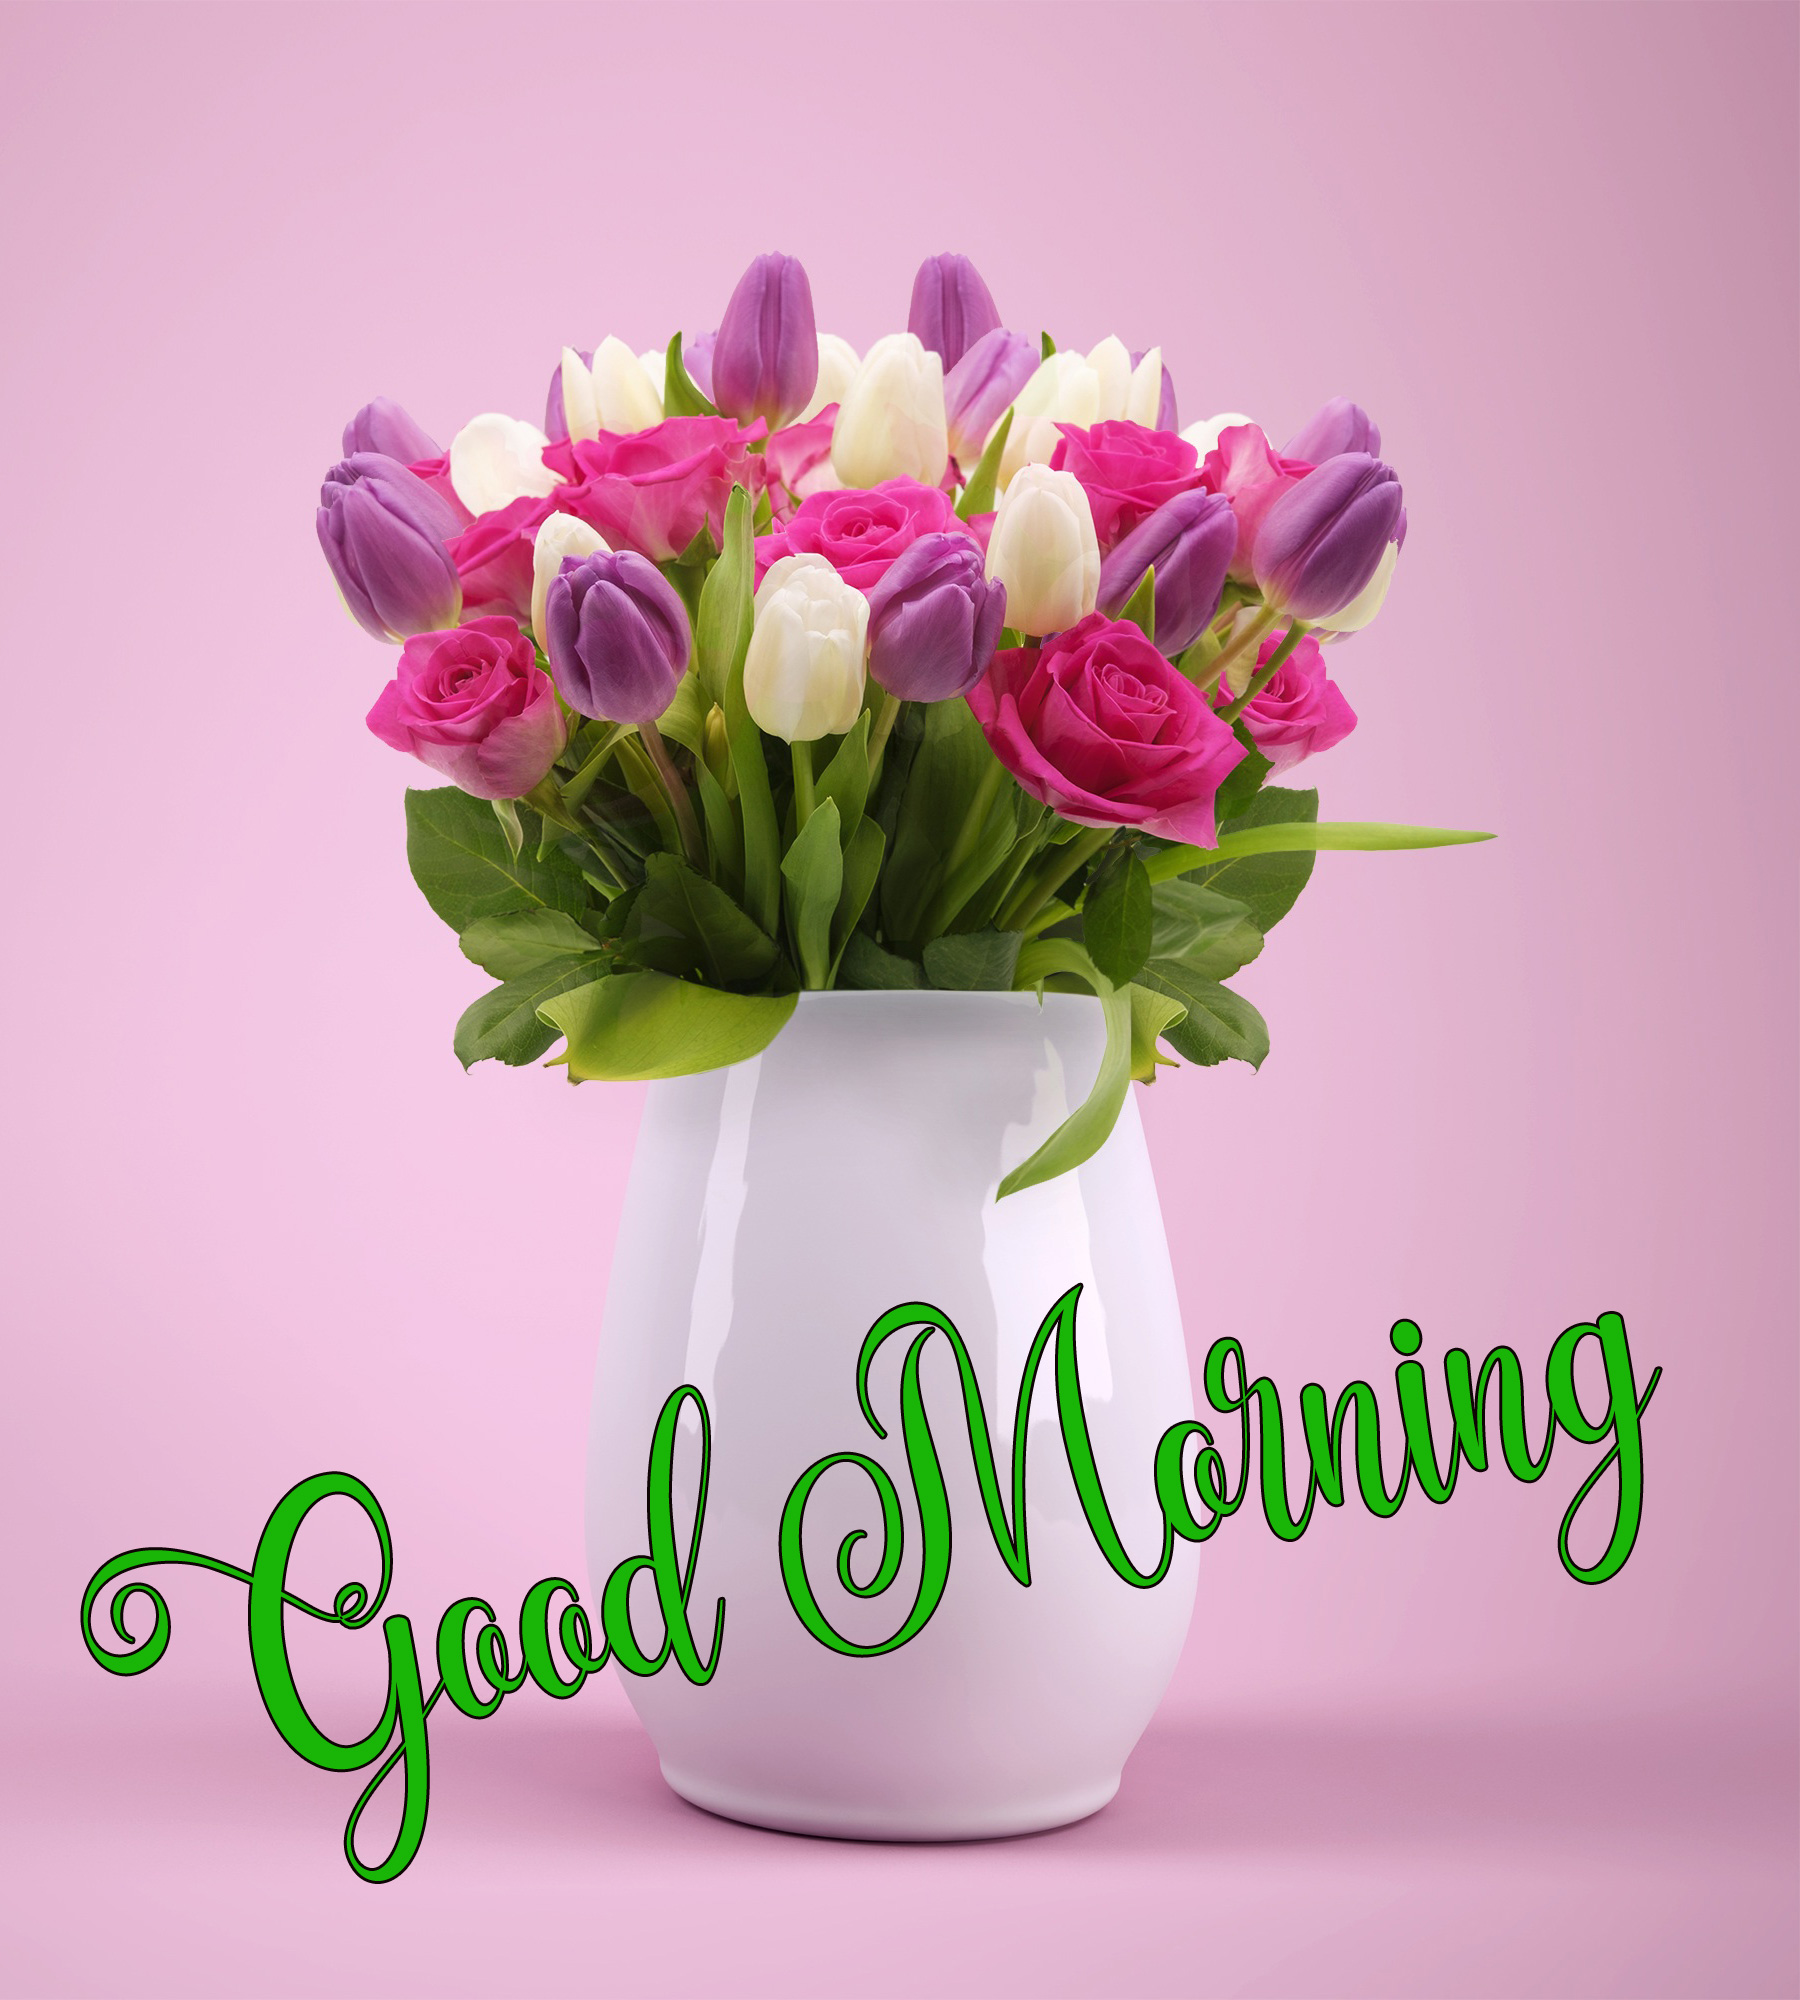 good morning images wallpaper pictures pics hd